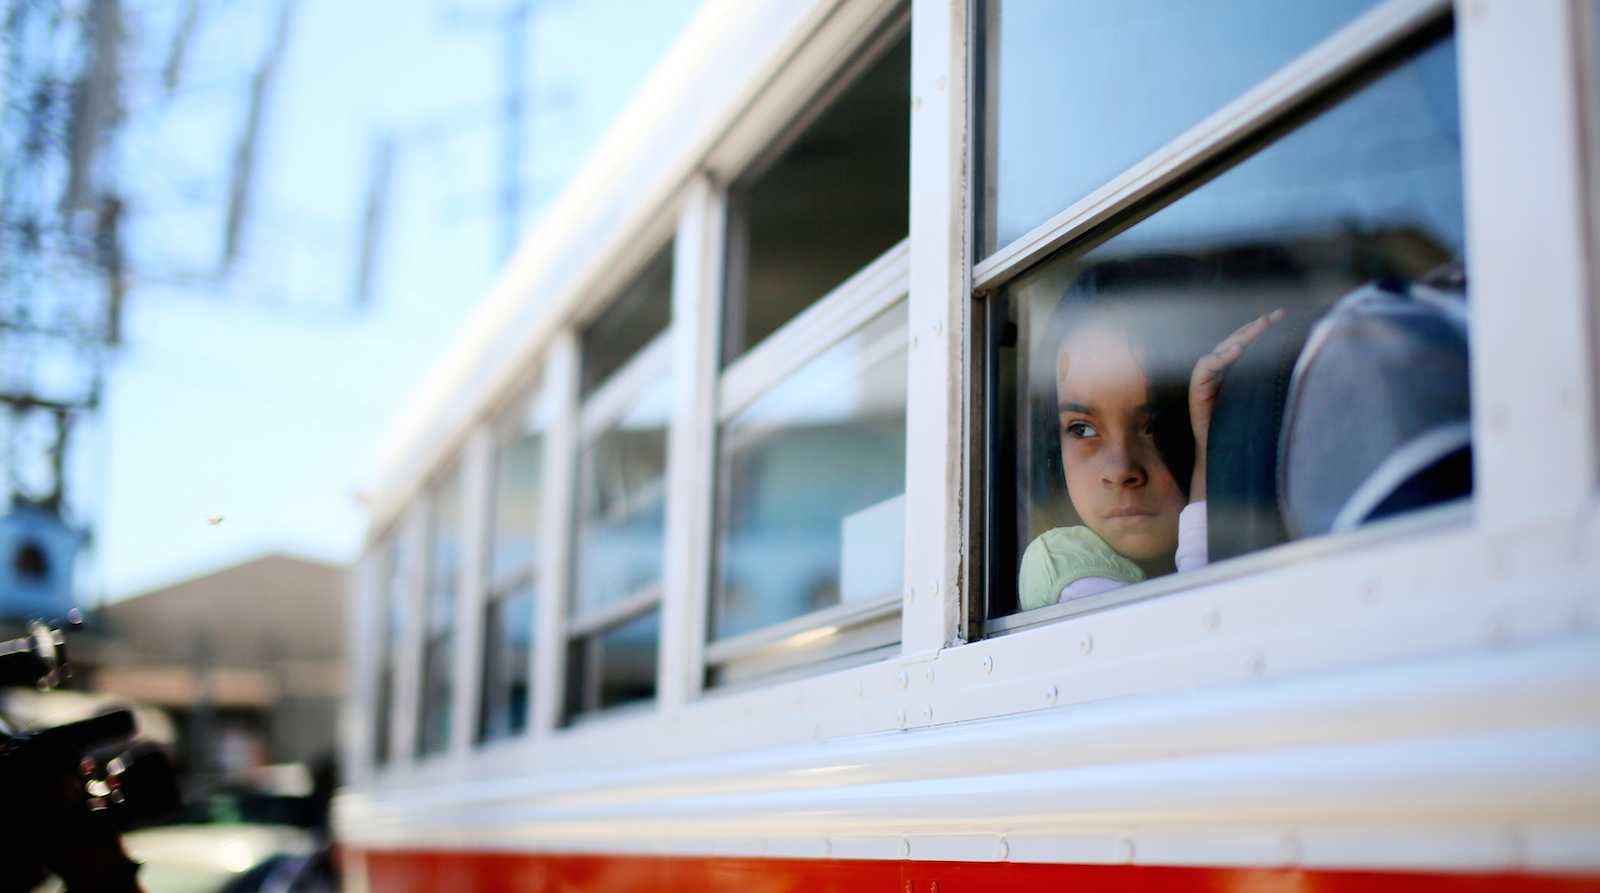 A young girl prepares to depart a bus with her parents before a protest at the U.S.-Mexico border during a Dream Act protest in Tijuana, Mexico, March 10, 2014. Approximately 40 protesters turned themselves in at the border in an attempt to get arrested trying to enter the United States, to bring light to deportations by the Obama administration. REUTERS/Sandy Huffaker (MEXICO - Tags: POLITICS SOCIETY EDUCATION CRIME LAW IMMIGRATION)